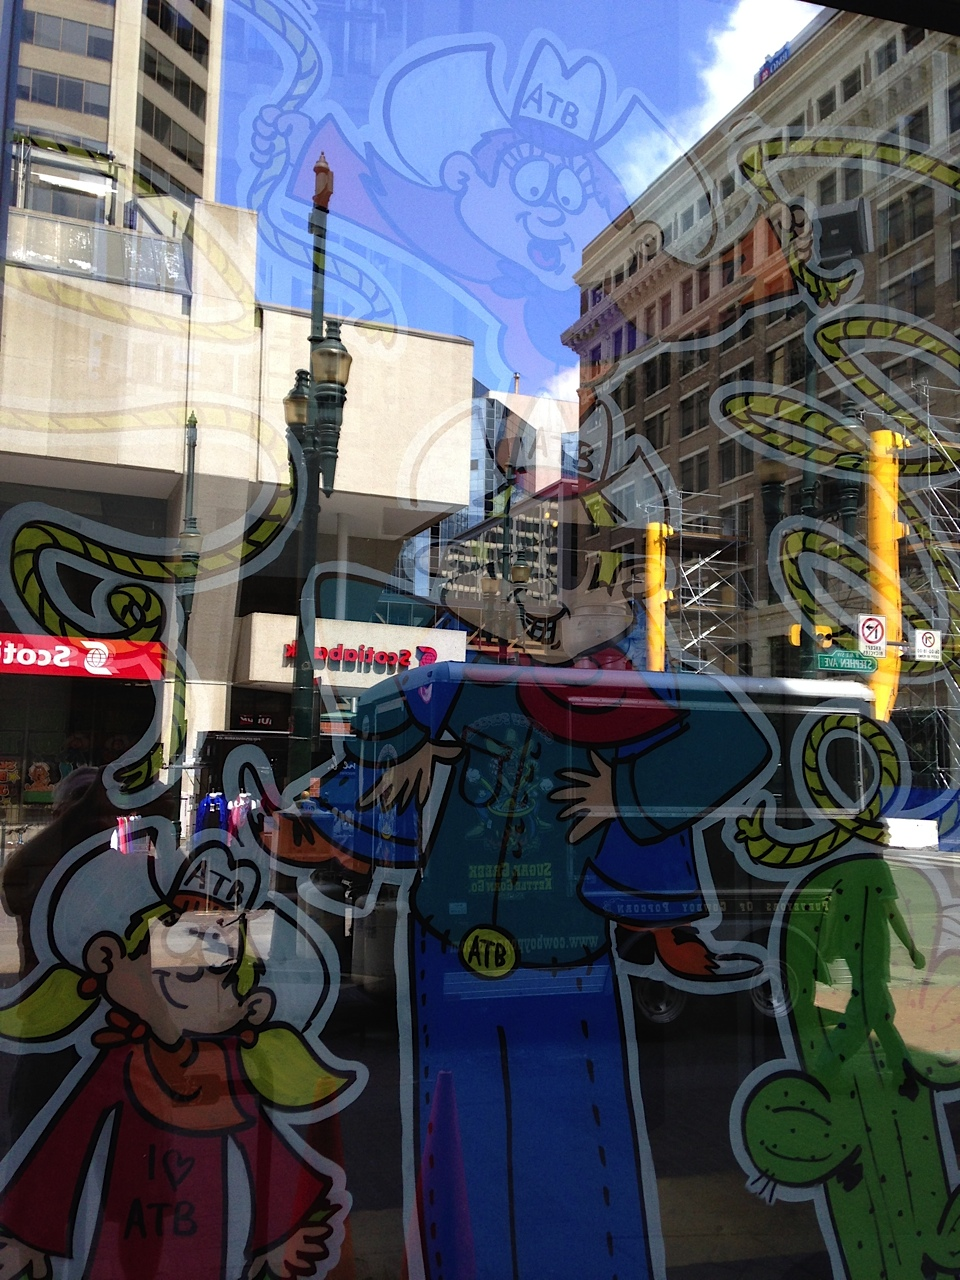 Most of the banks downtown were good at decorating their window with kitschy cartoons.